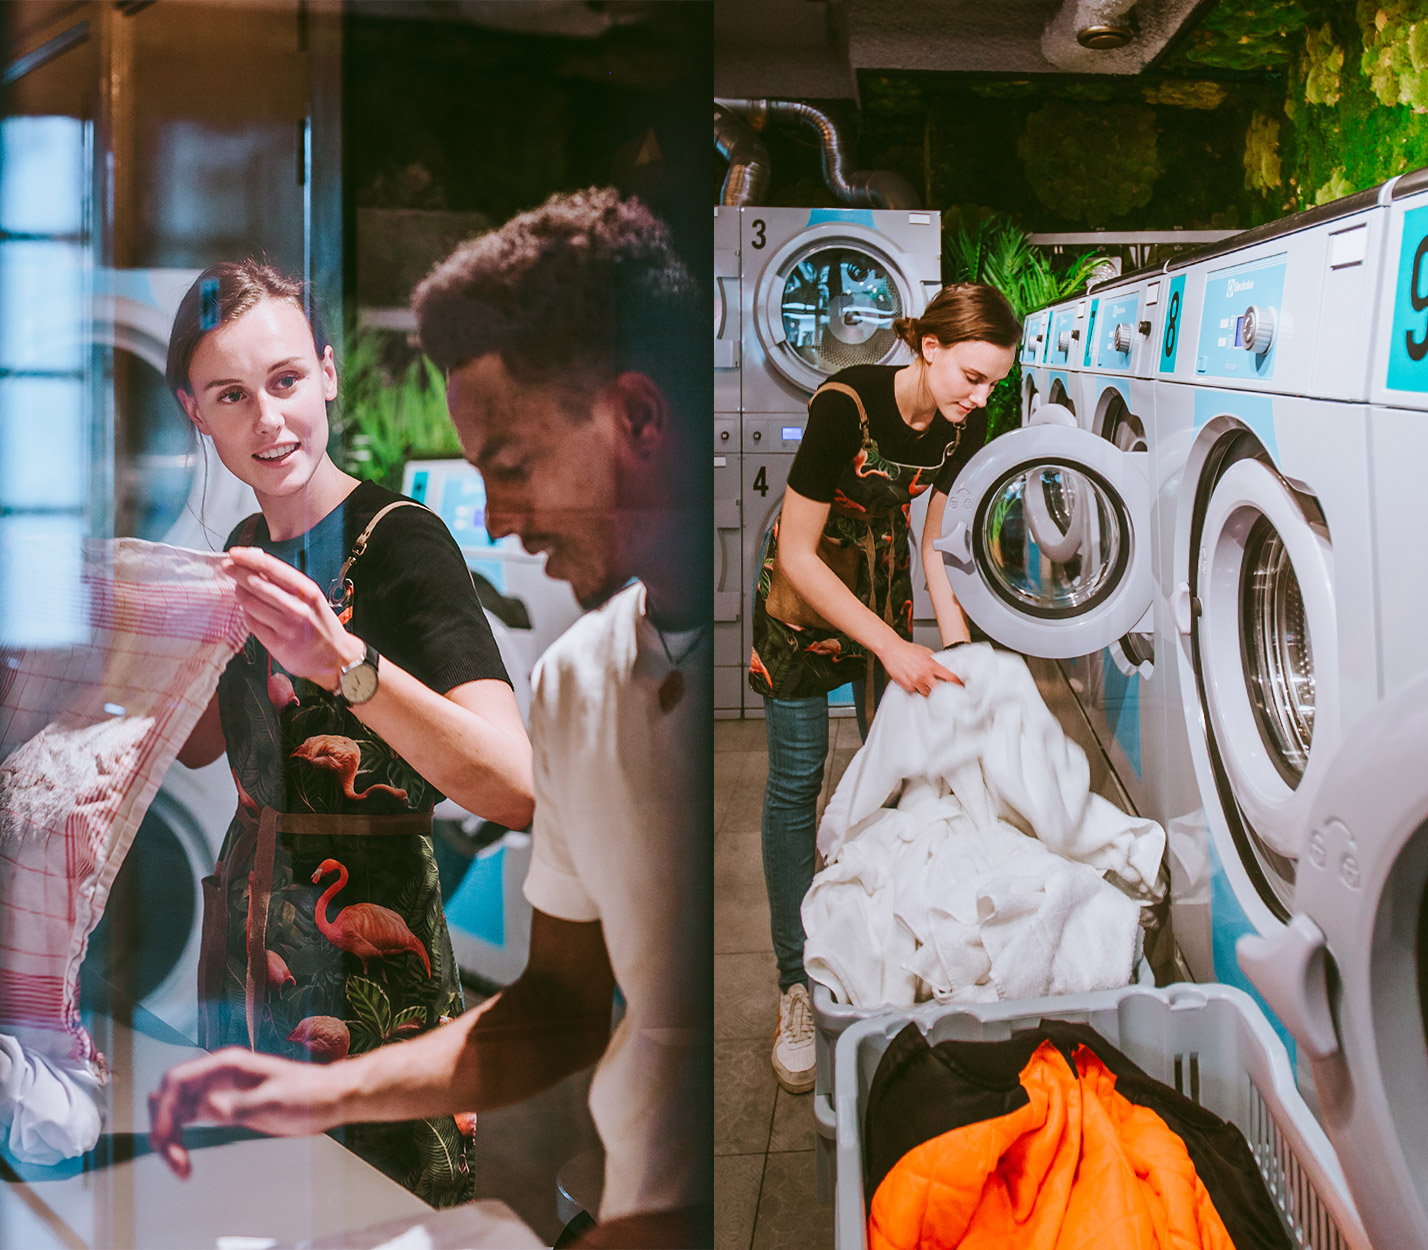 Social blurring: Laundry, learning and lots of doughnuts